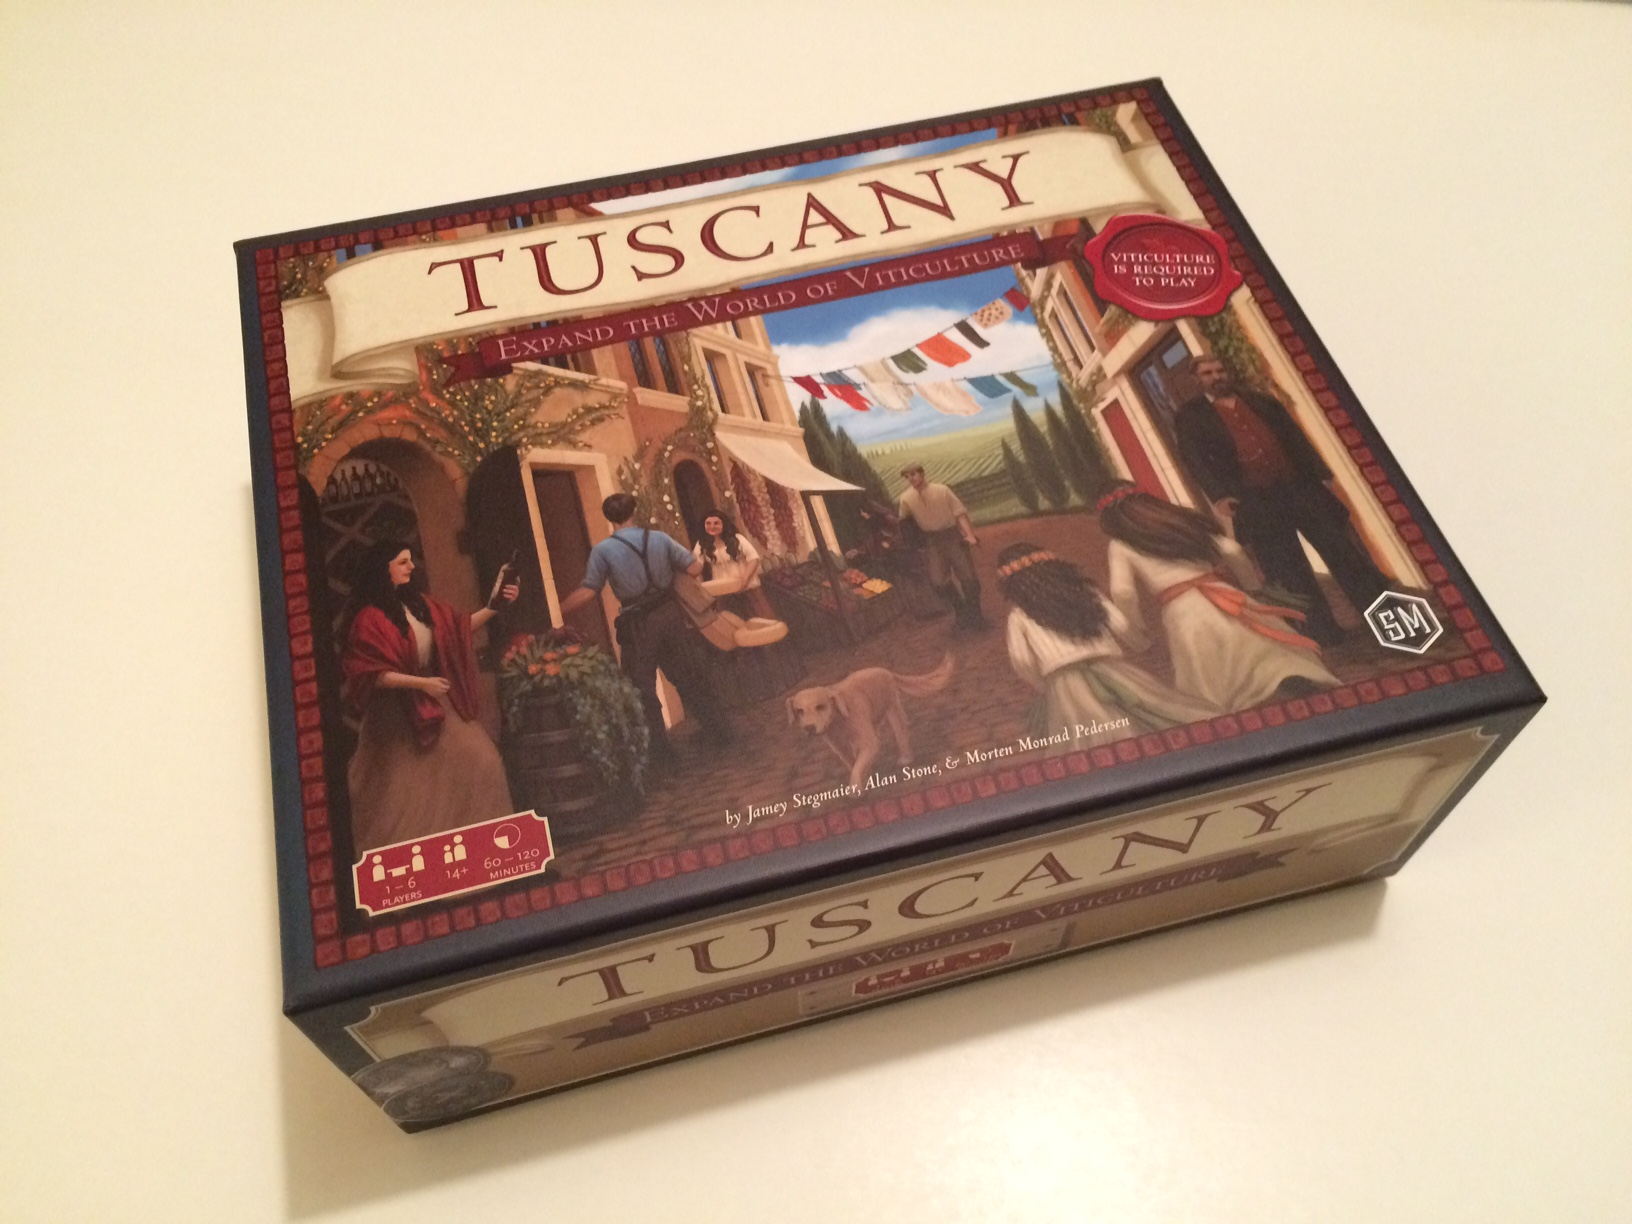 https://i2.wp.com/stonemaiergames.com/wp-content/uploads/2013/10/Tuscany-box.jpg